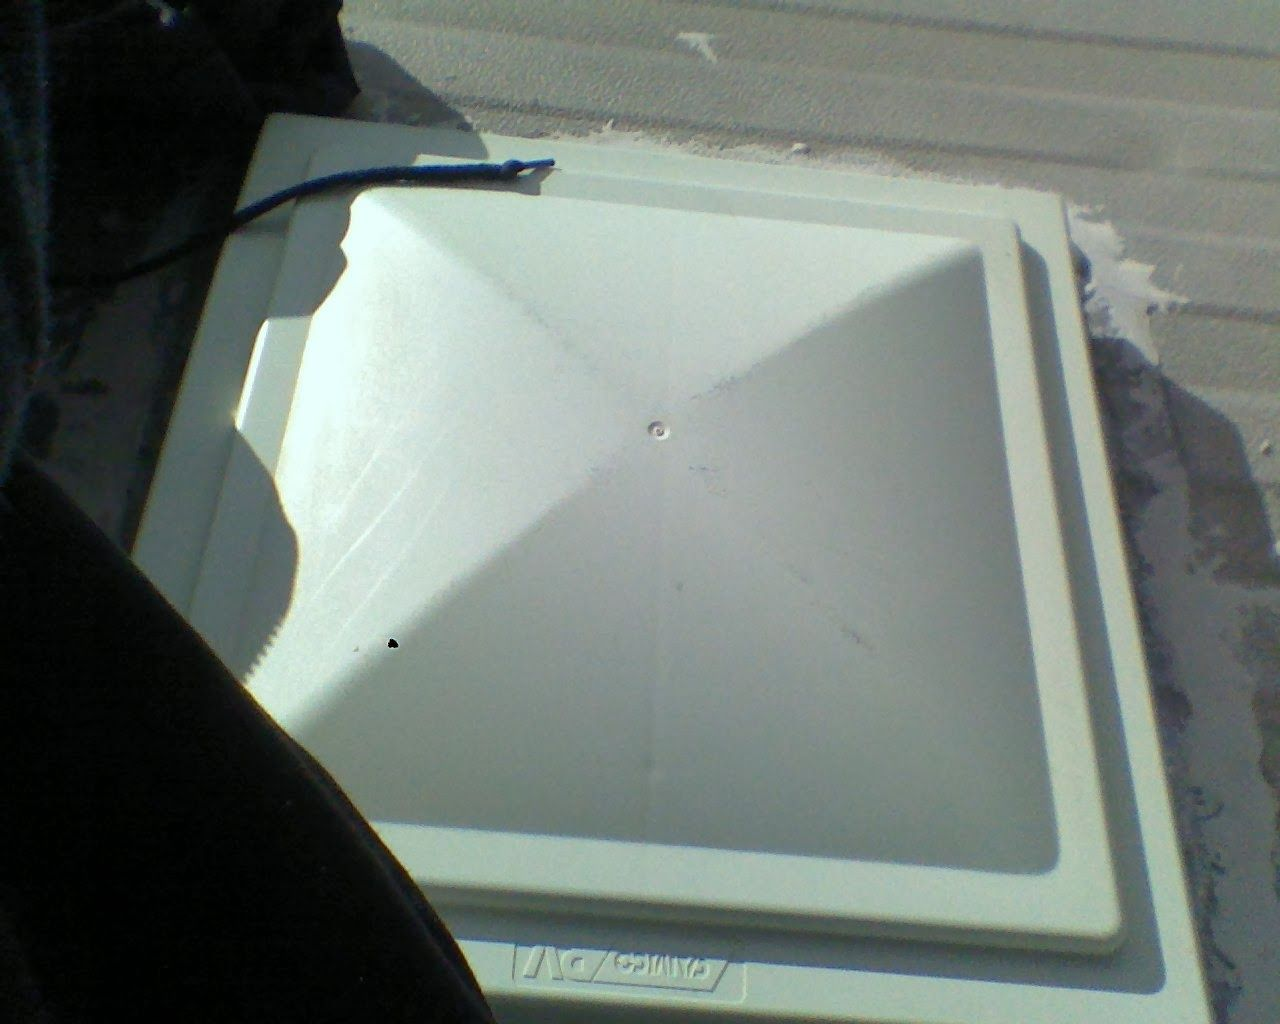 Fixing Leaks In Roof Air Vents On Trailers Or Rv S Part 1 The Seal Roof Air Vent Leaking Roof Mobile Home Roof